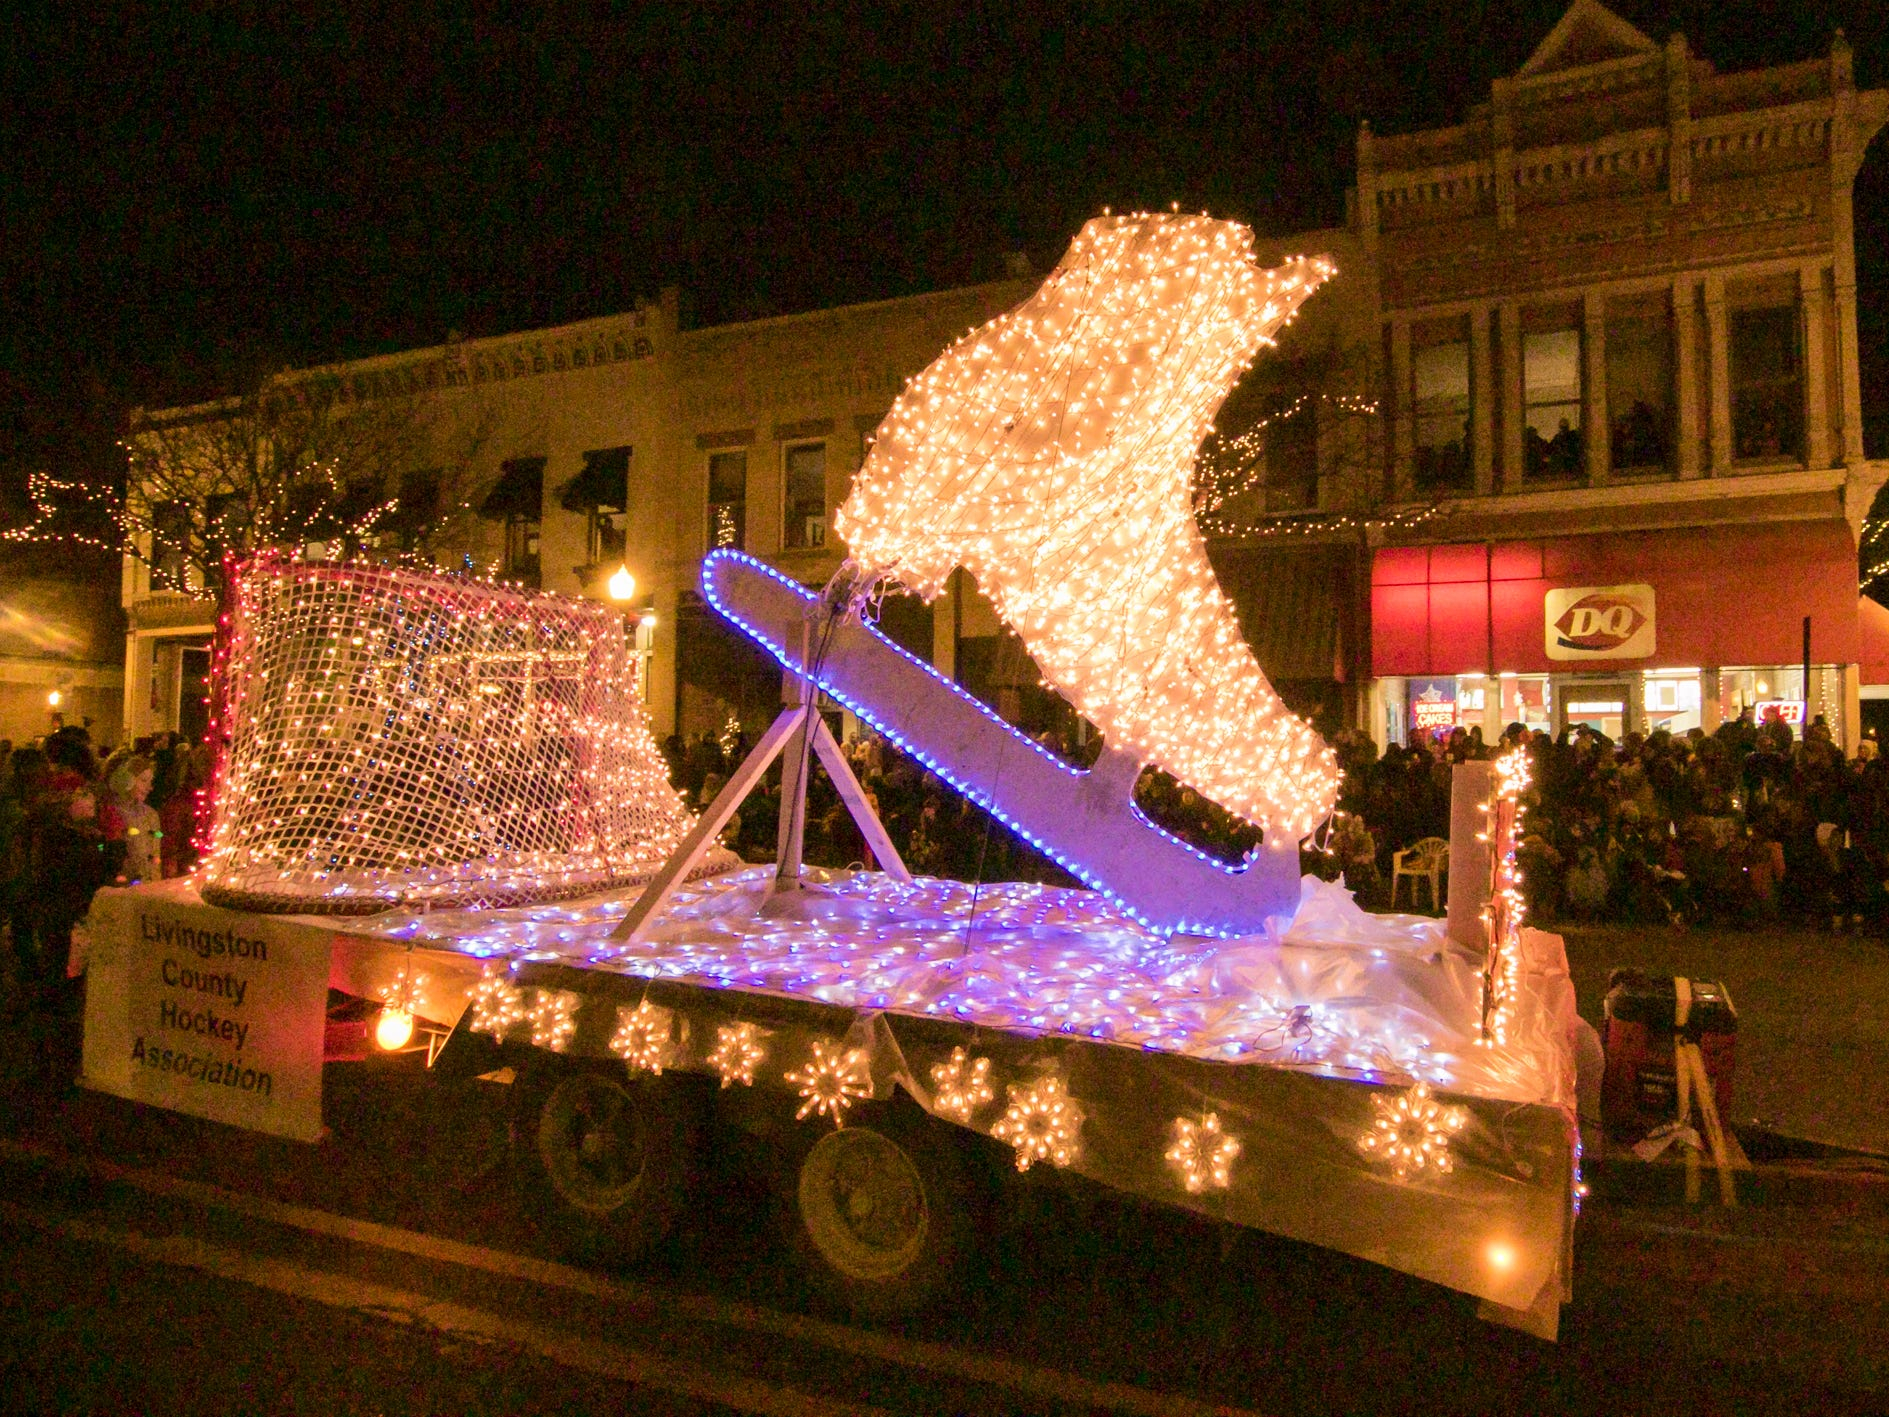 The float from the Livingston County Skate Club and Livingston County Hockey Association glides down Grand River in the Fantasy of Lights parade Friday, Nov. 23, 2018.